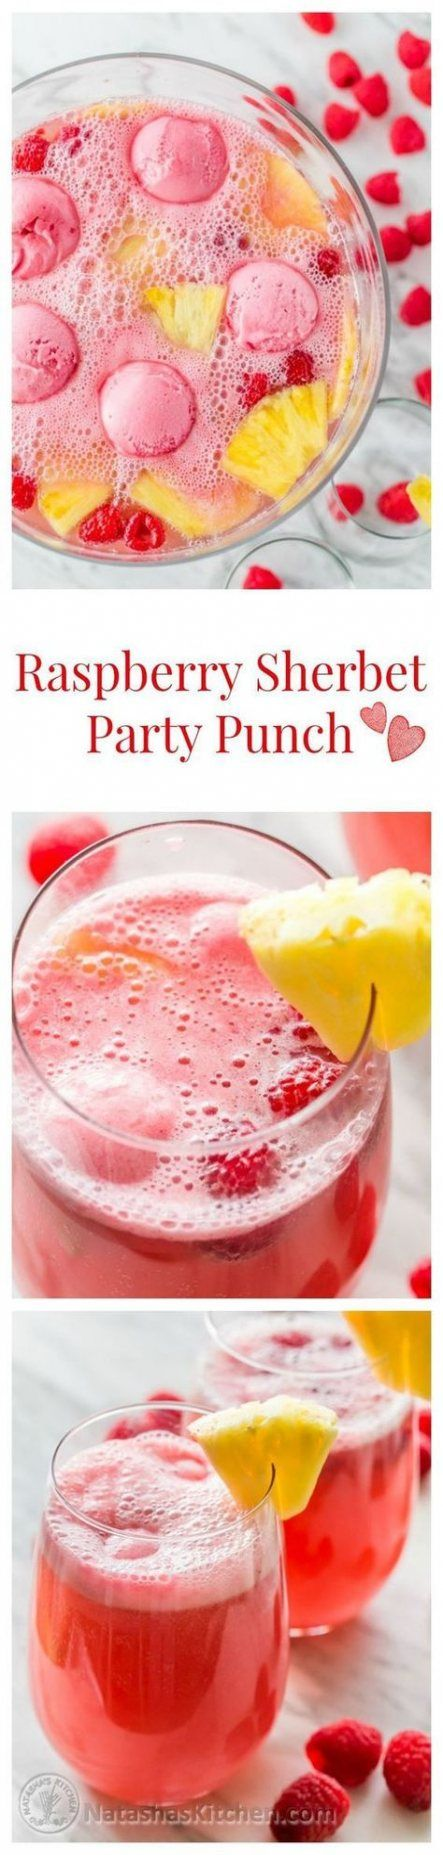 19+ ideas fruit drinks alcohol vodka punch recipes #vodkapunch